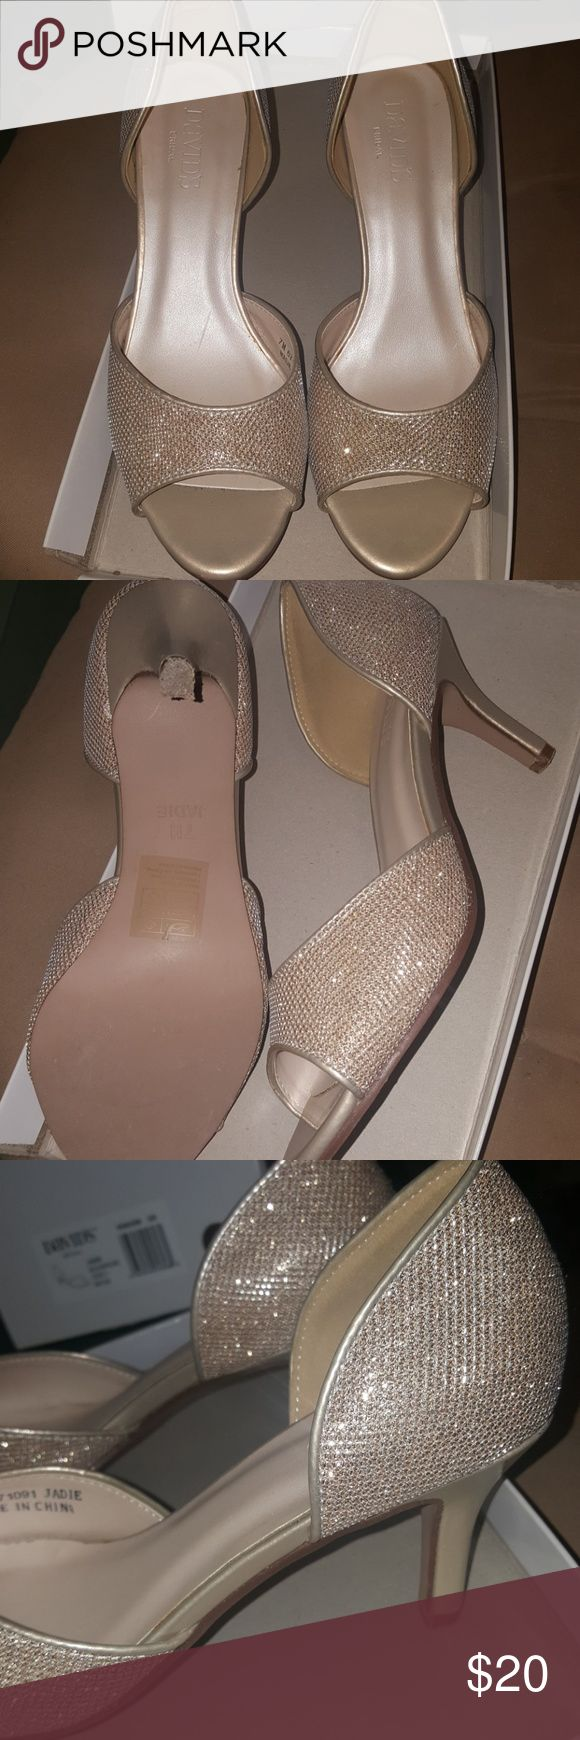 David's Bridal Gold Jadie shoes 7 Size 7 new in box gold David's Bridal shoes David's Bridal Shoes Heels